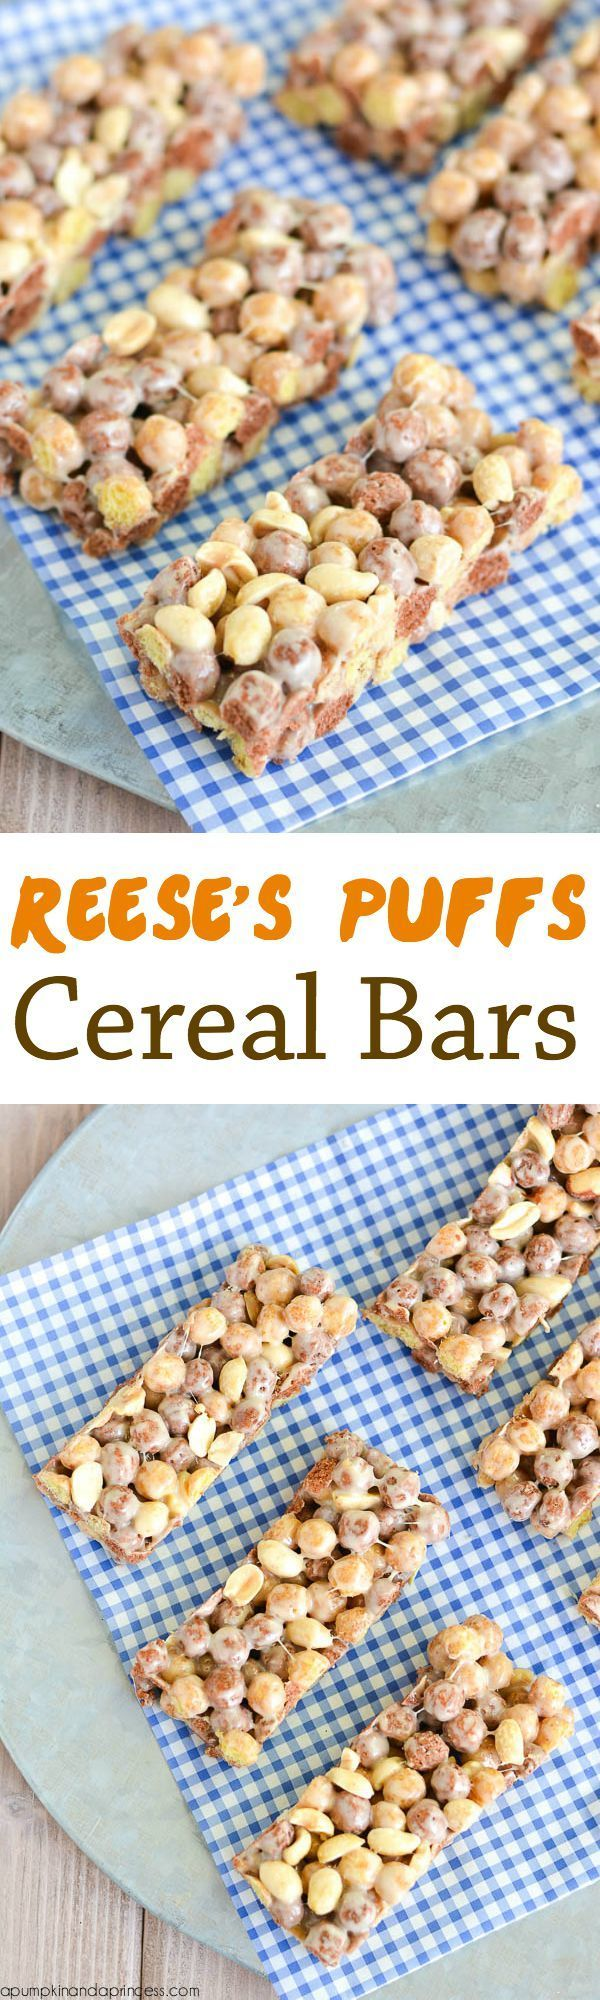 Reese's Puff Cereal Bars   Fun Snack Recipe for Kids